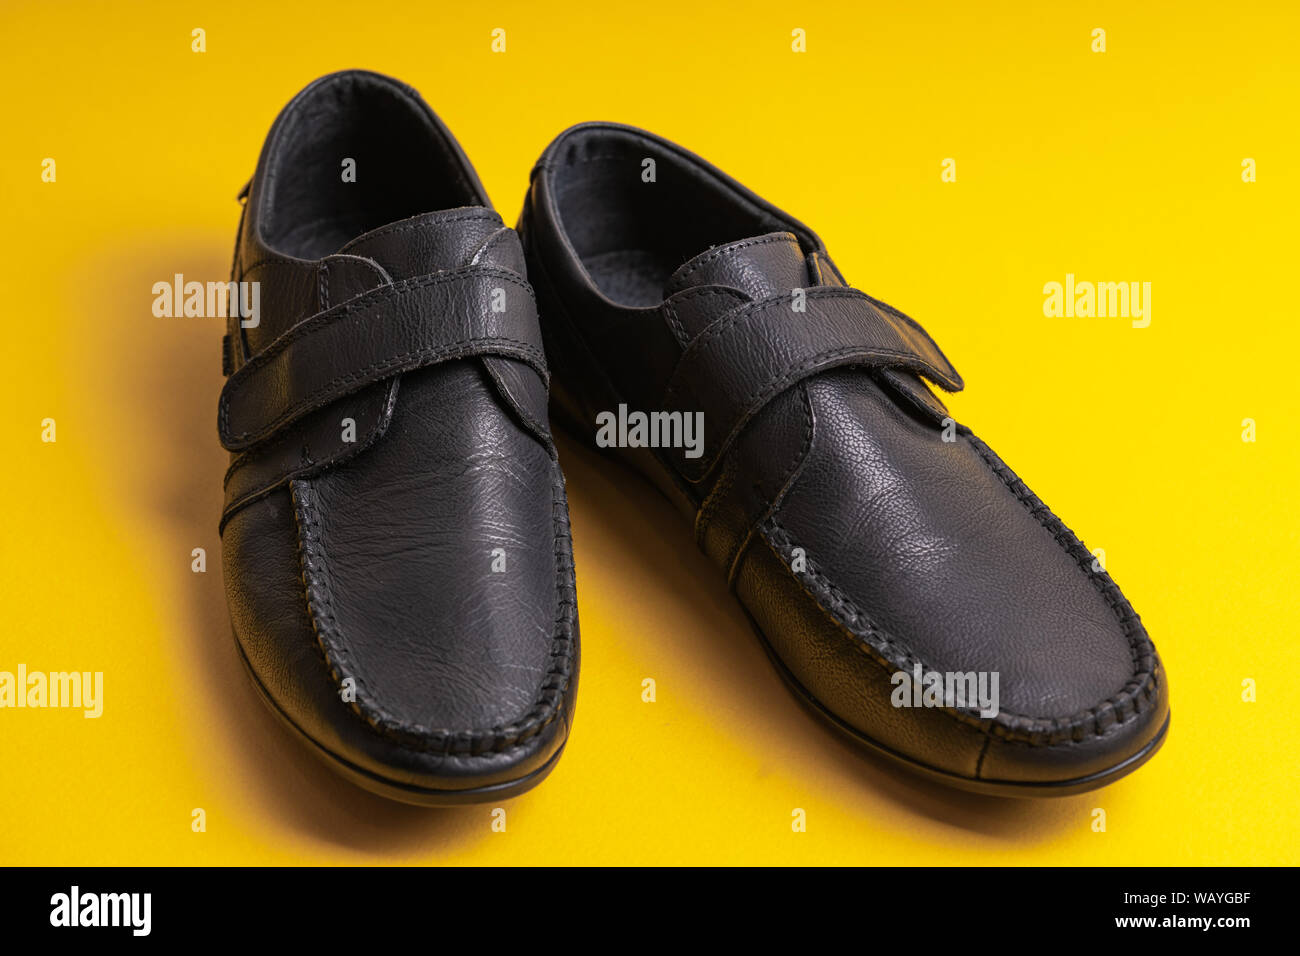 Black childrens school shoes with